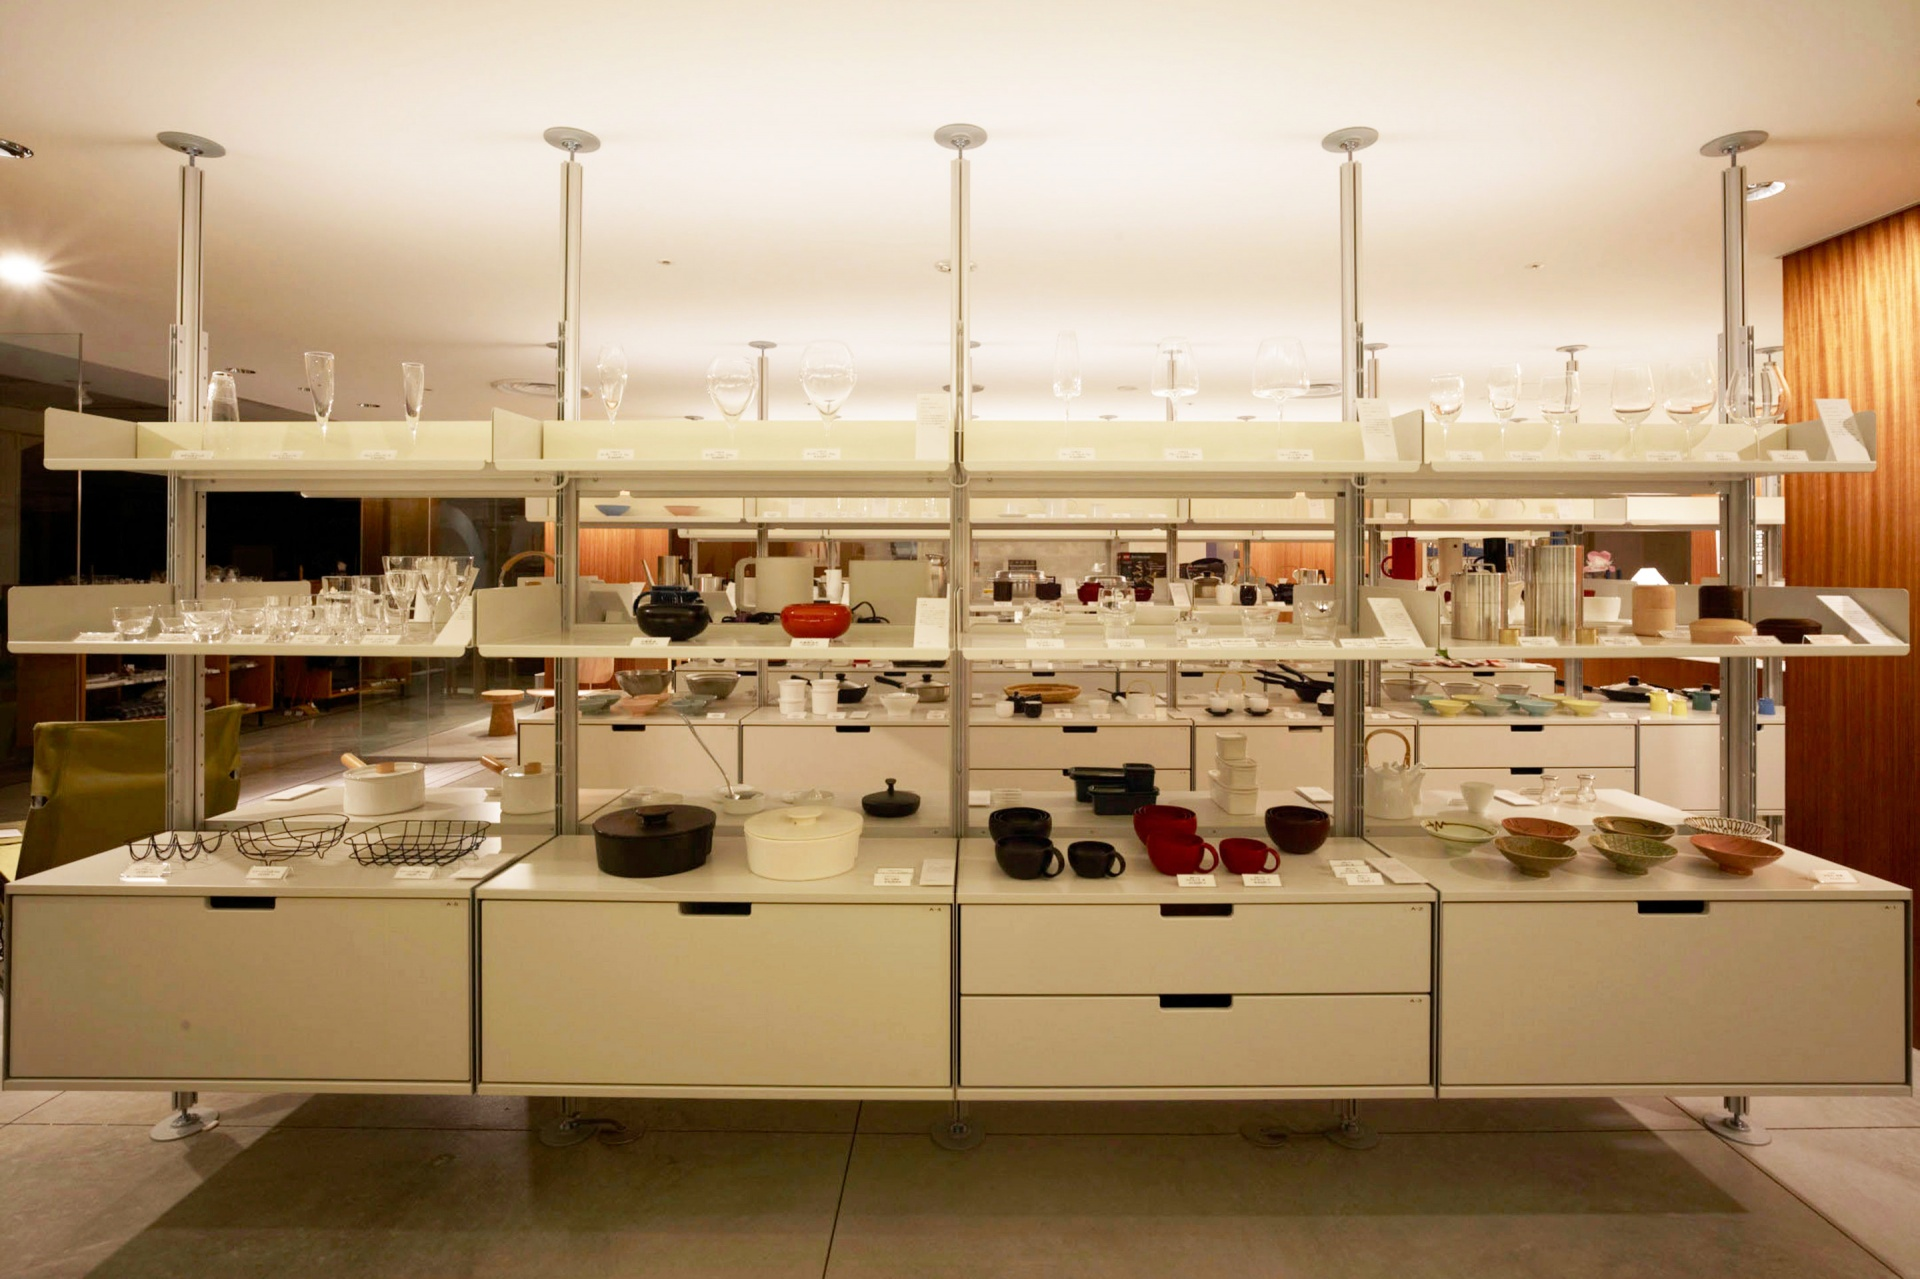 Museum/gallery with 606 Universal Shelving System